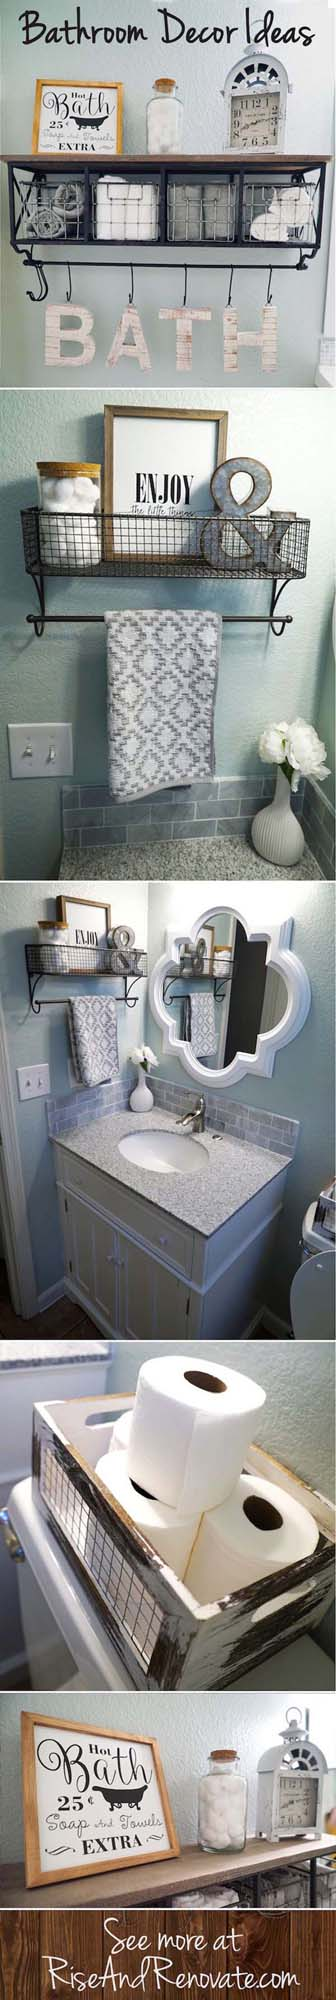 Easy DIY Bathroom Storage Baskets #storage #toilet #bathroom #homedecorimage